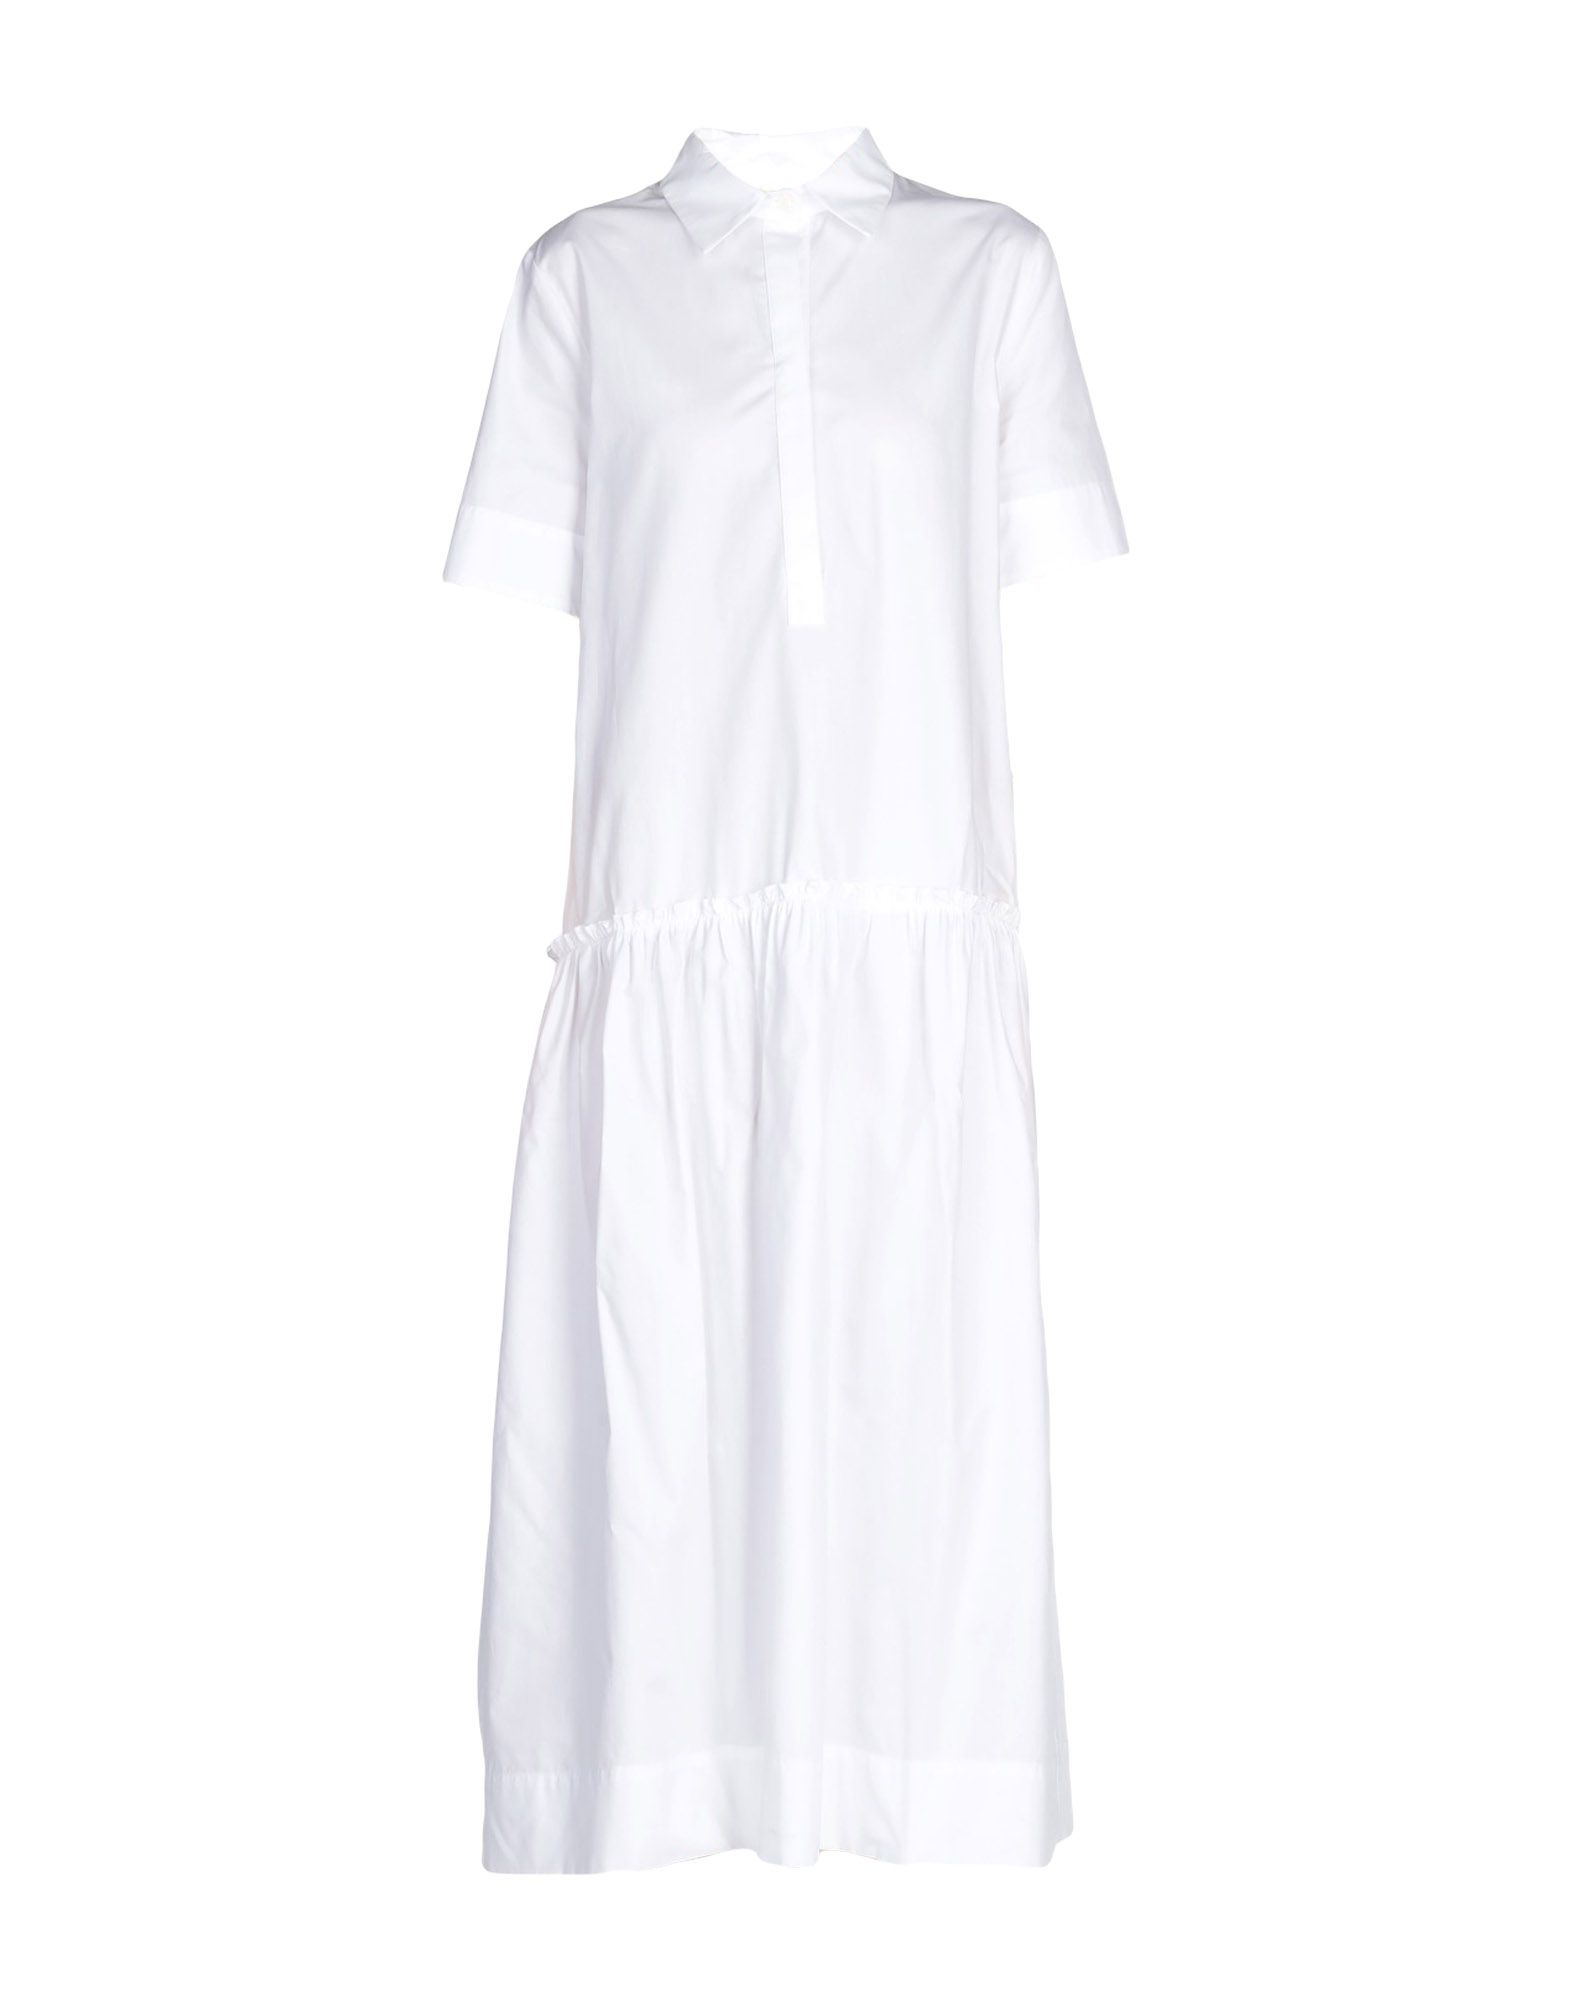 MIAHATAMI Long Dress in White